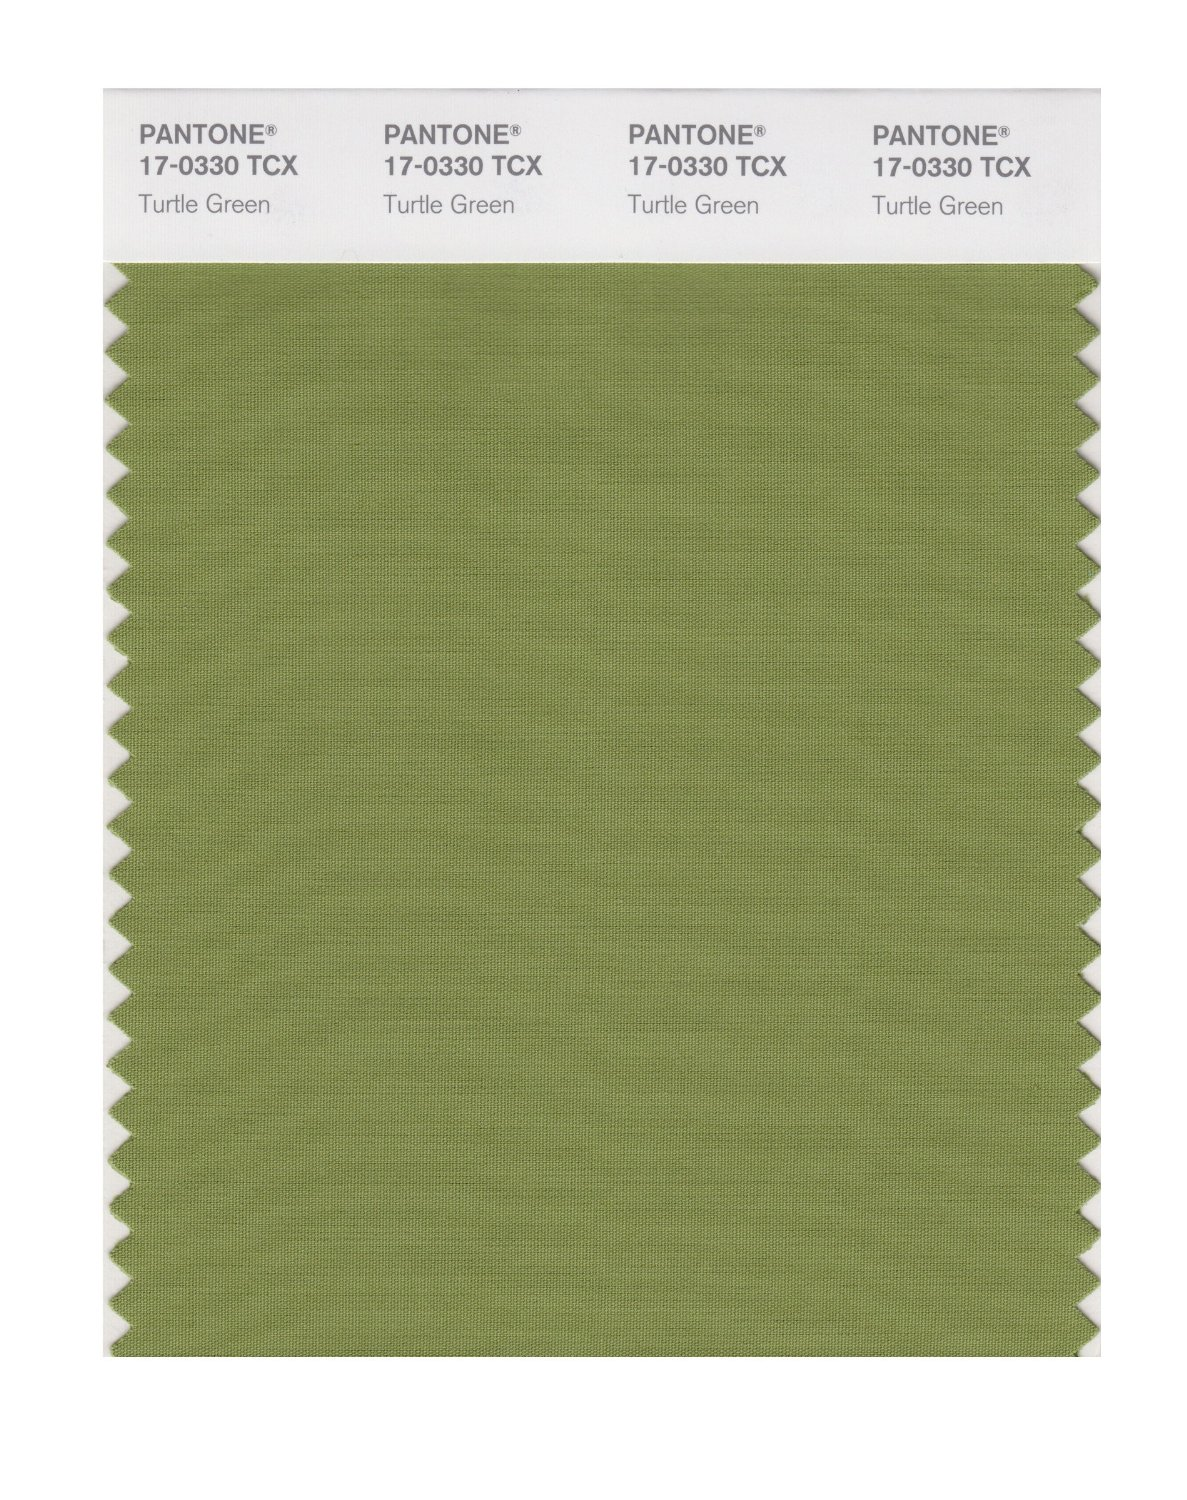 Pantone Smart Swatch 17-0330 Turtle Green